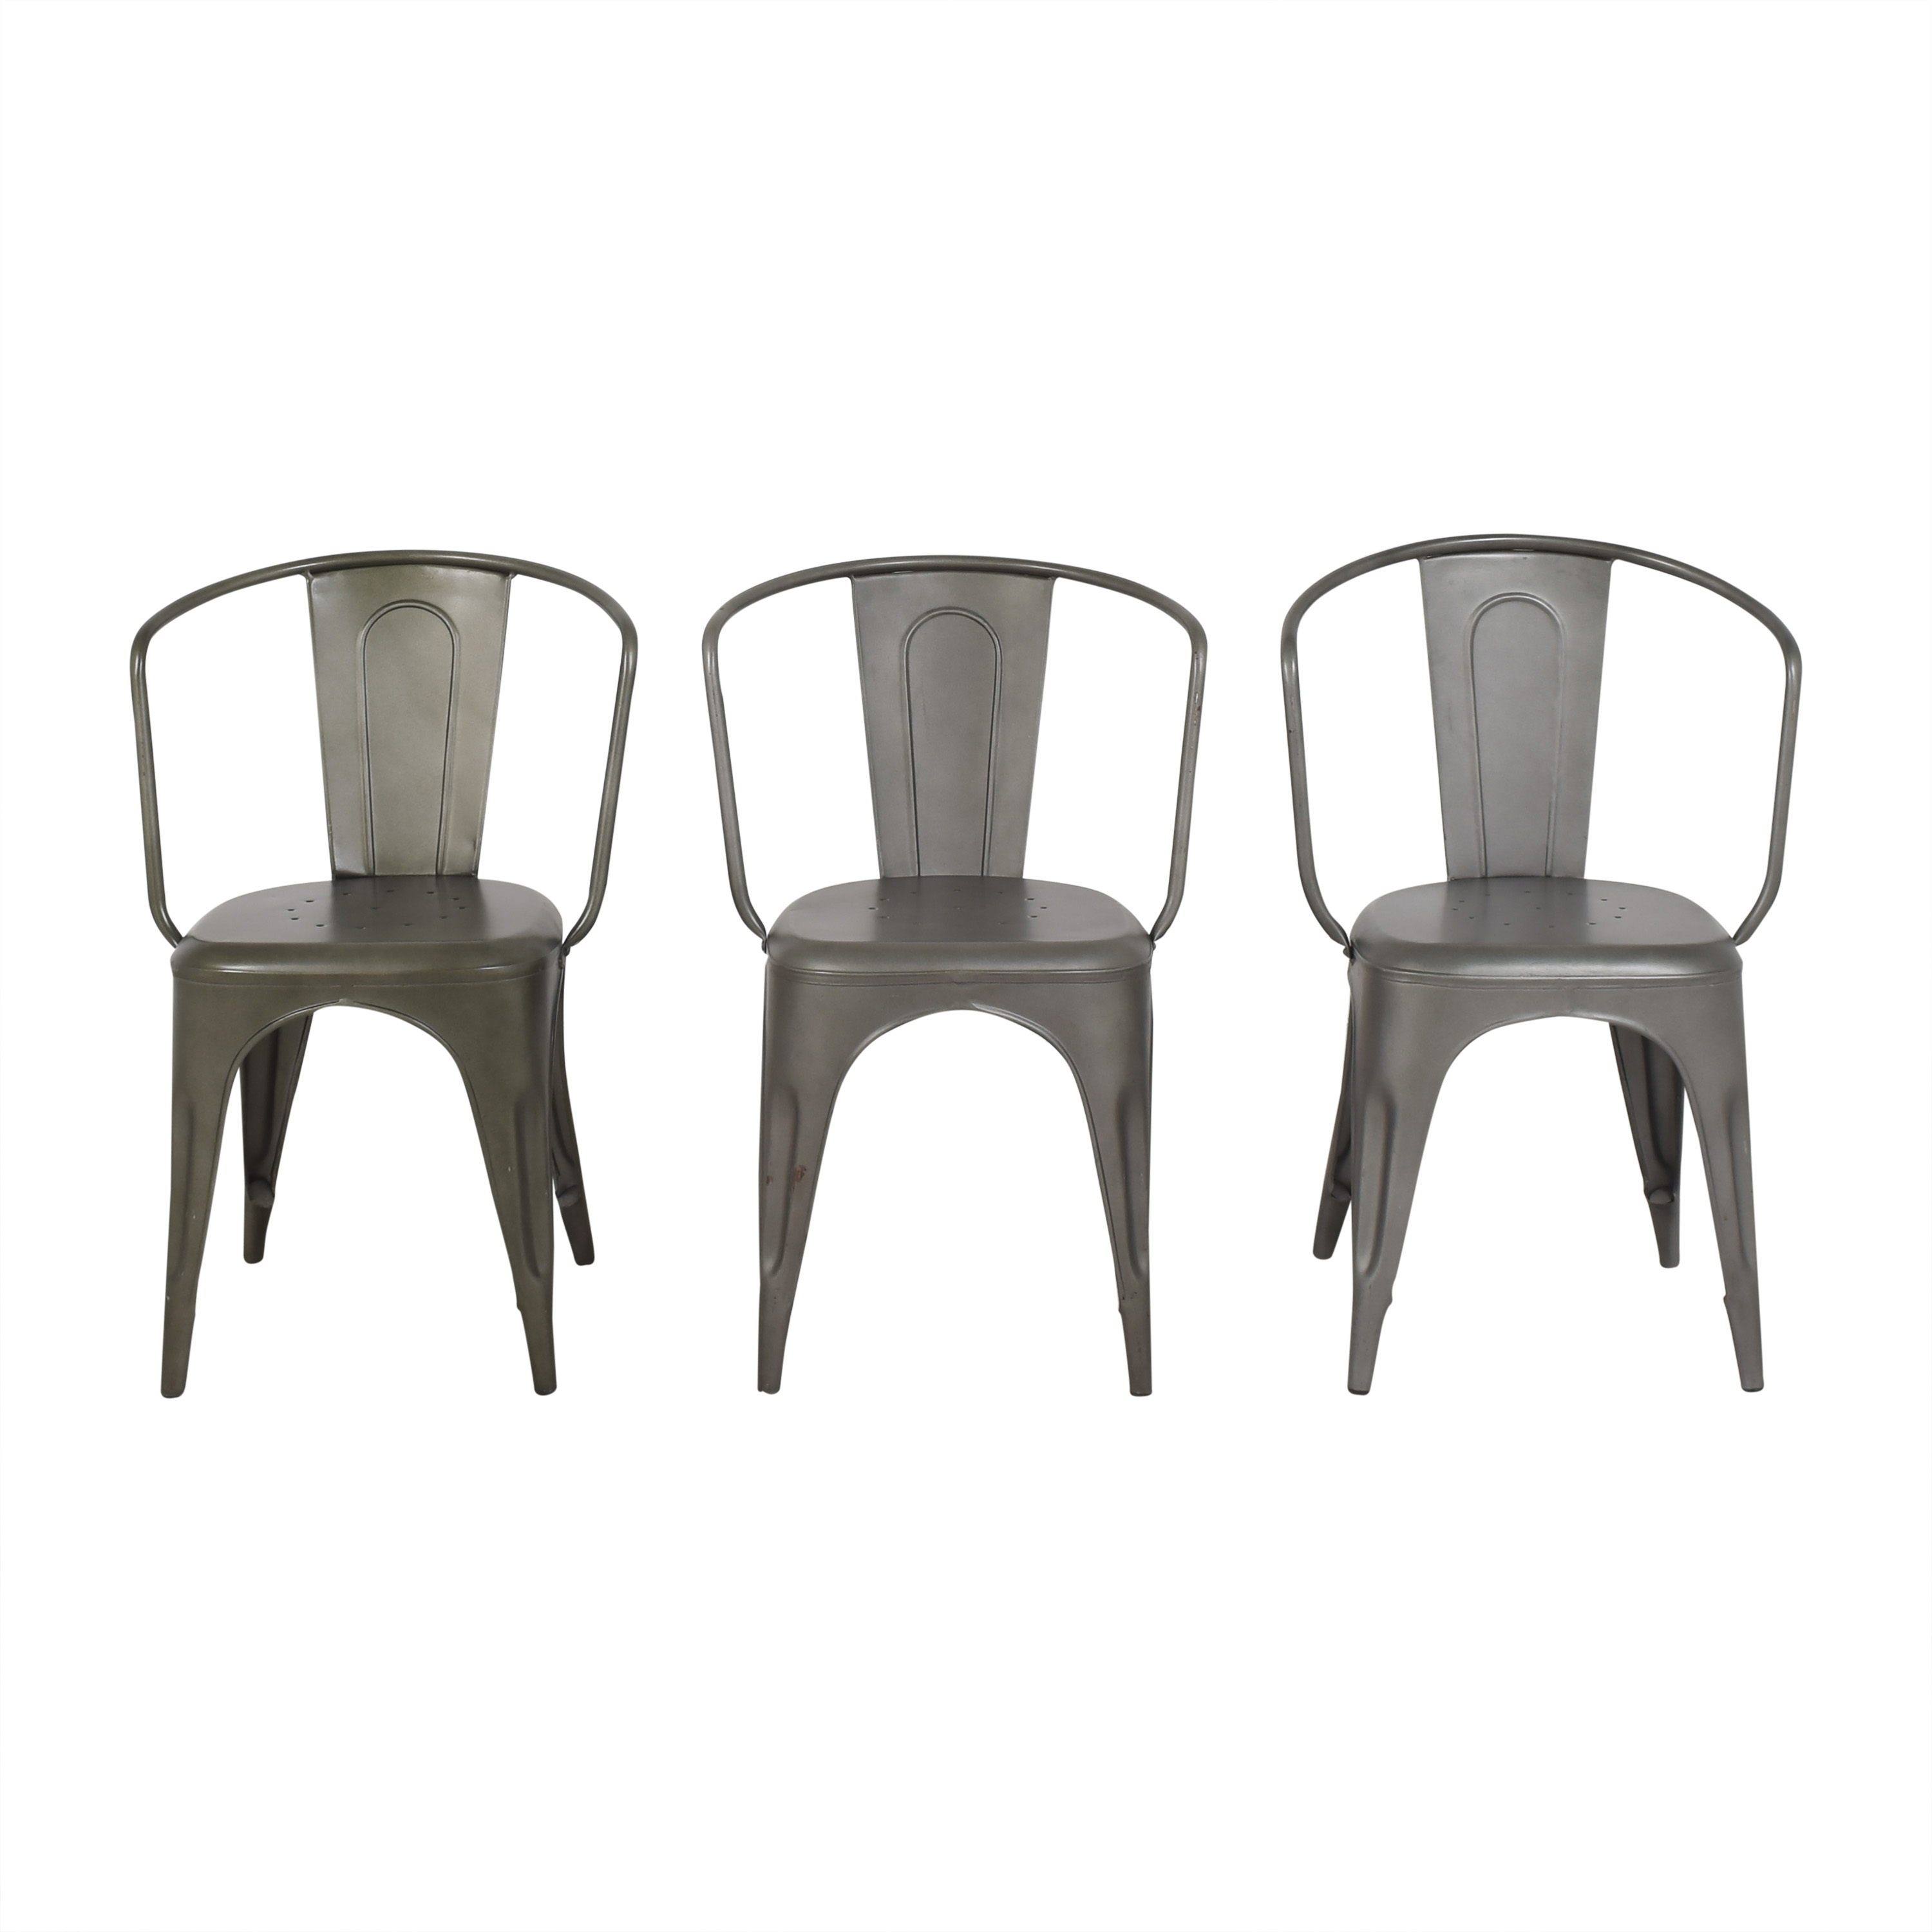 Restoration Hardware Restoration Hardware Marcel Modern Armchairs on sale